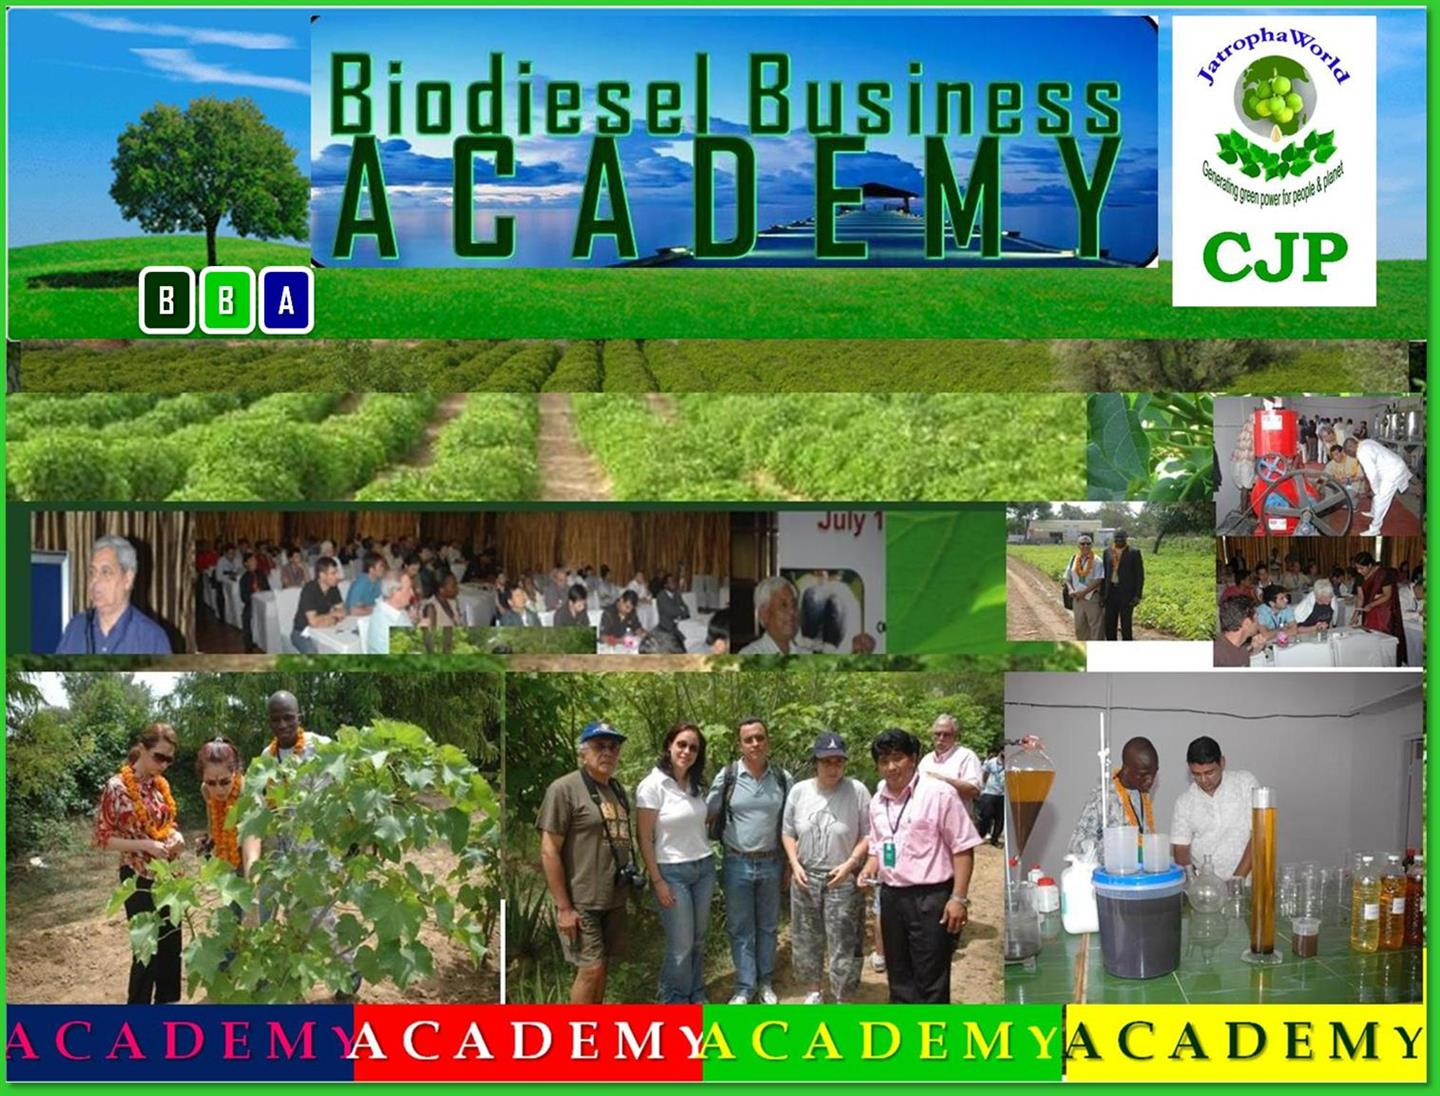 Biodiesel Business Academy